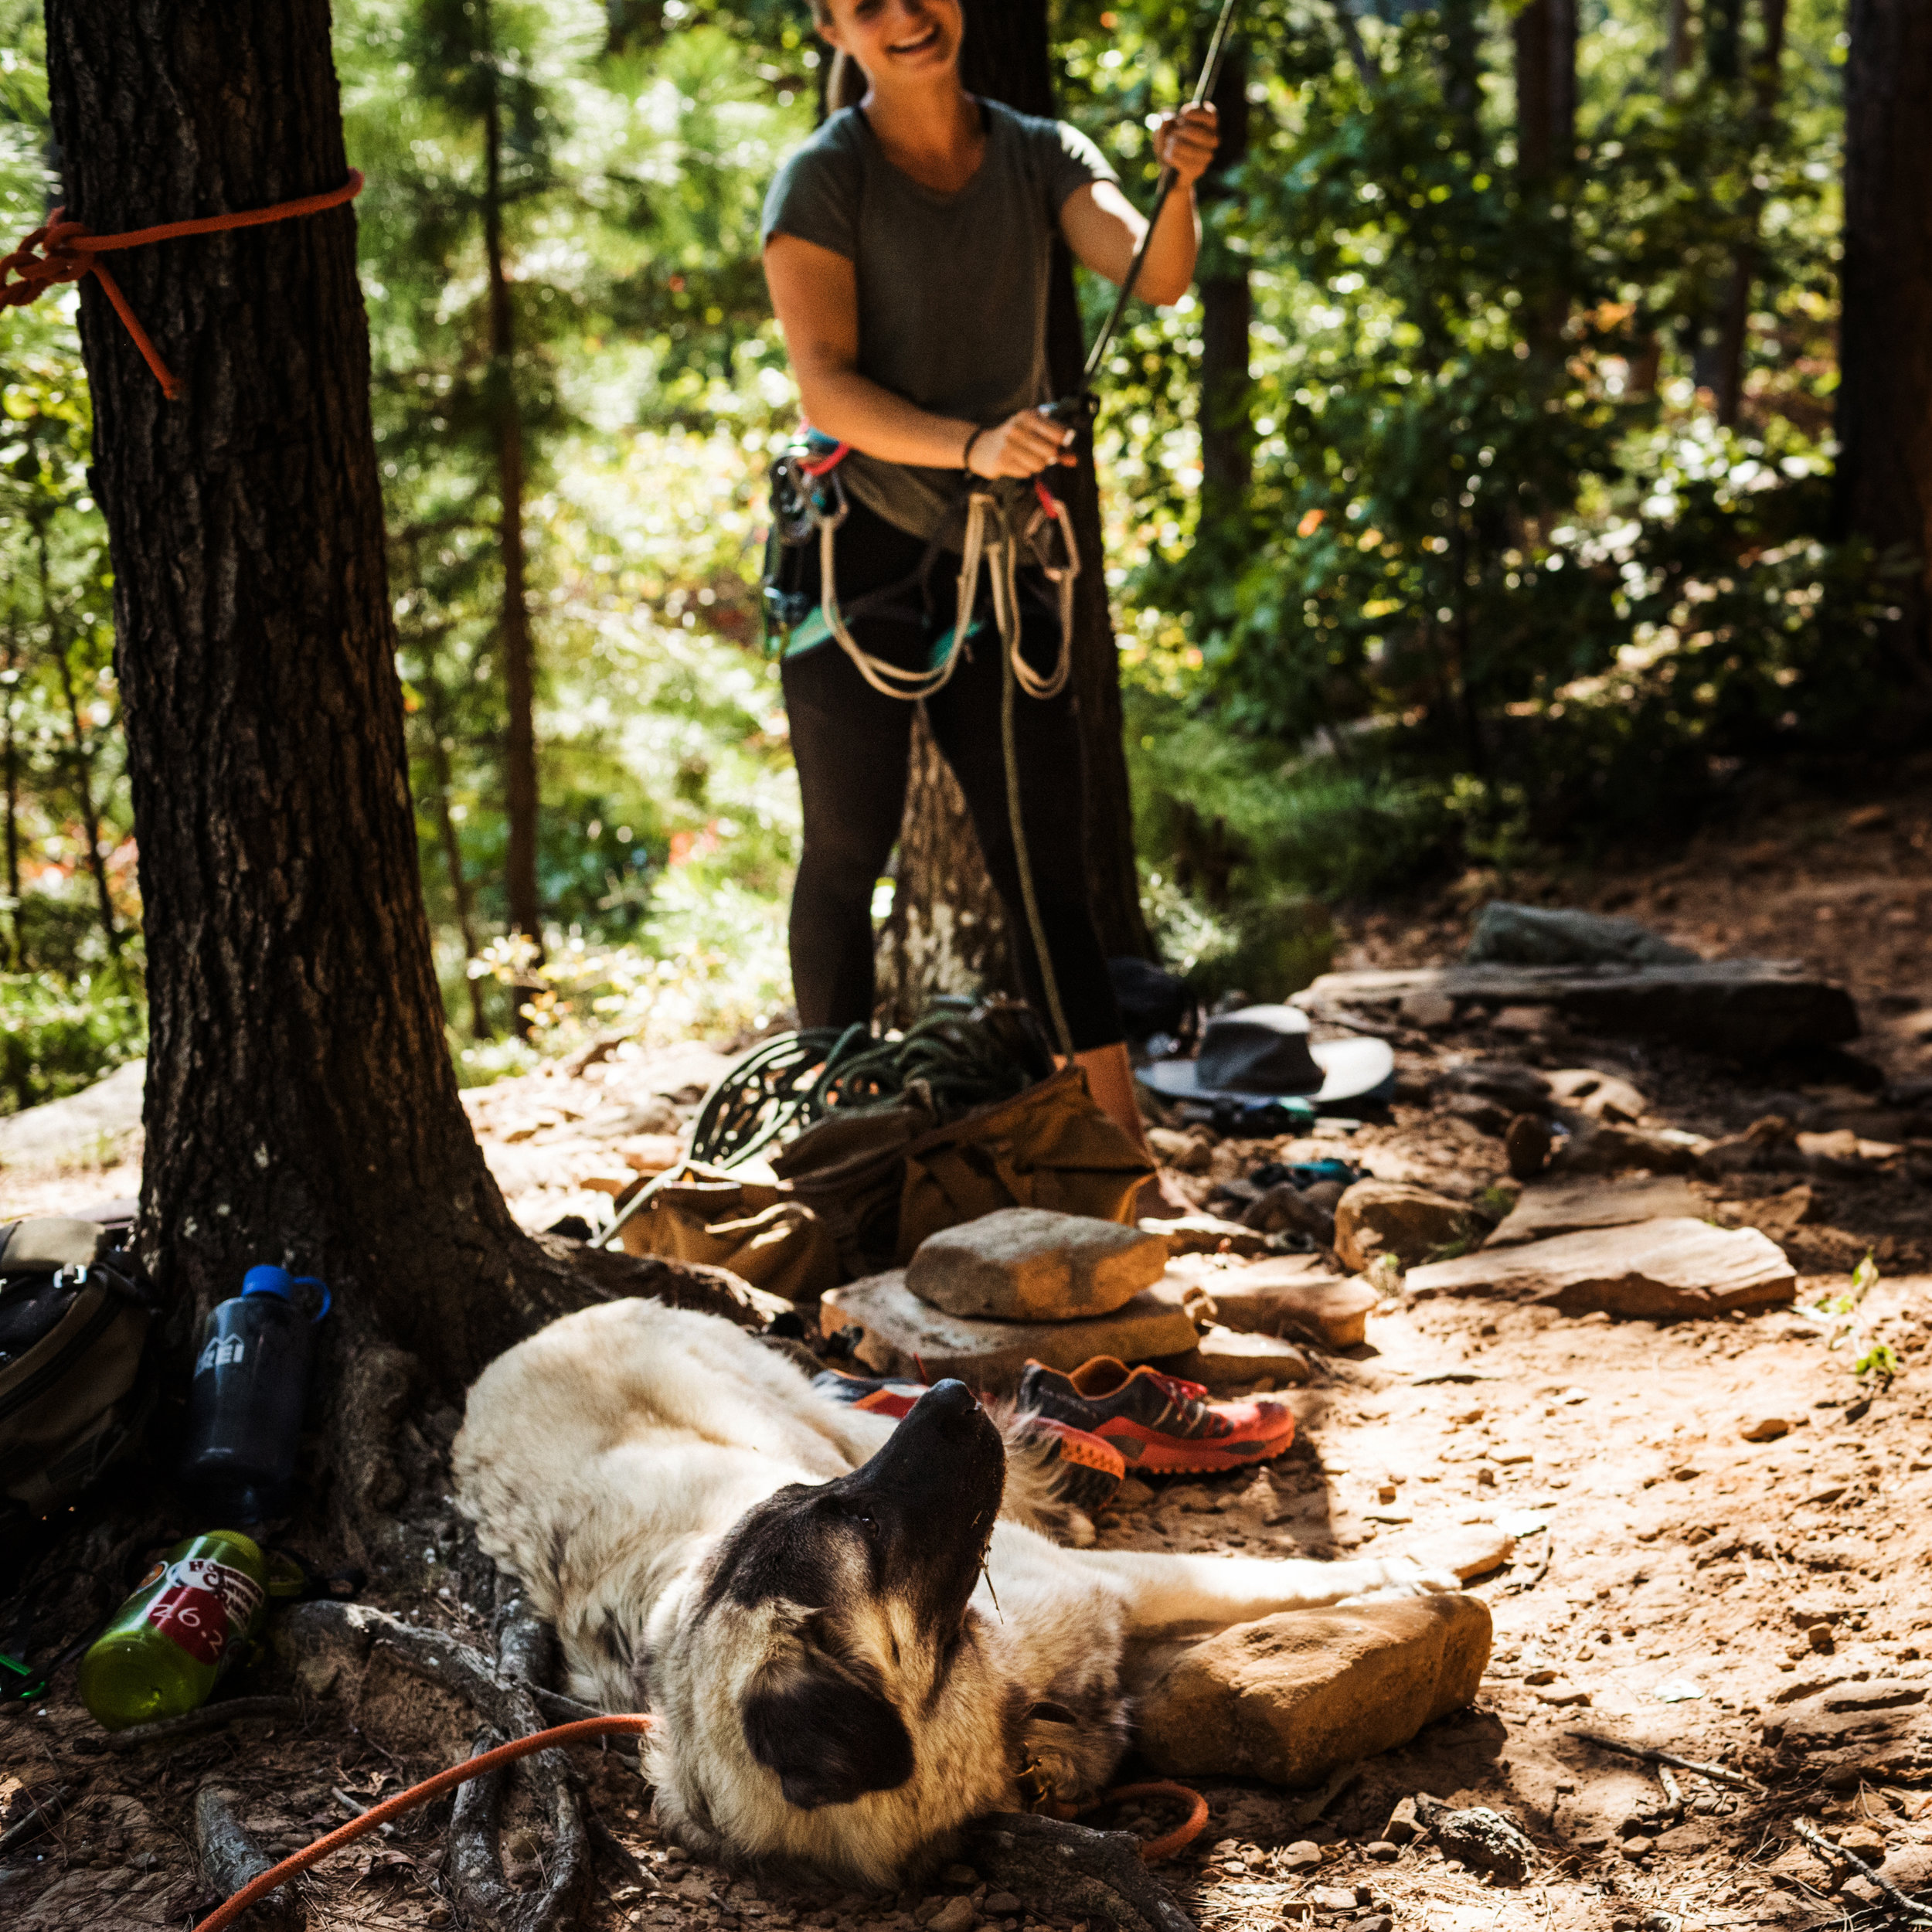 TaraShupe_Photography_SamsThrone_Climbing_Arkansas_CampingWithDogs_005.jpg